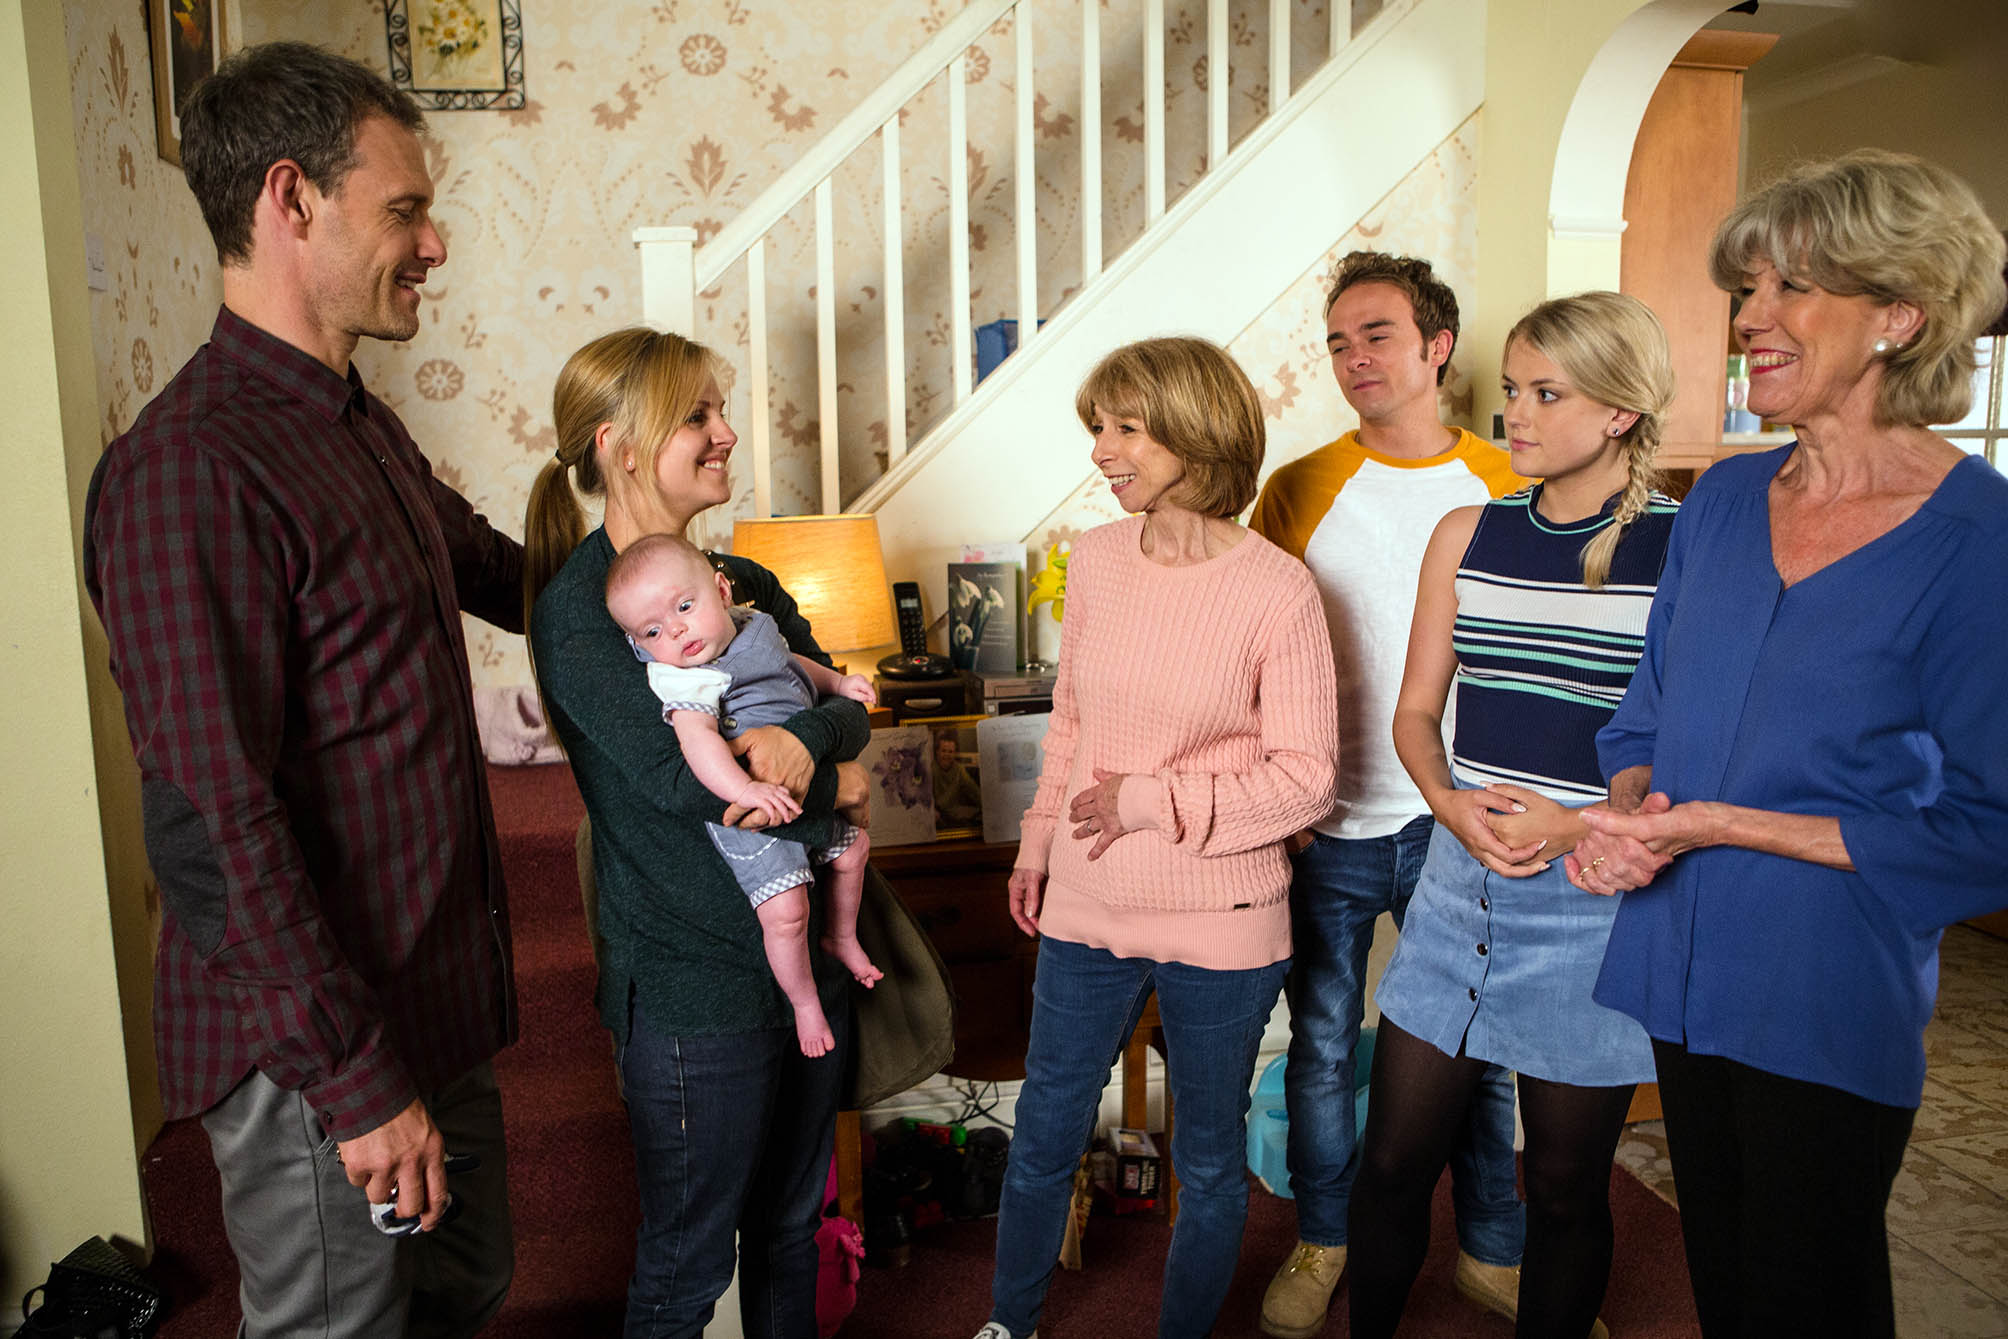 Editorial use only Mandatory Credit: Photo by ITV/REX/Shutterstock (8964552cp) Ep 8956 Friday 29 July 2016 - 1st Ep Having been discharged from hospital for the day, Sarah Platt, as played by Tina O'Brien, returns home with Harry. As the Platts clear out Kylie's clothes, they're taken aback when David Platt, as played by Jack P Shepherd, tells them he's already chosen Kylie's last outfit for the funeral. Aware he's struggling, Sarah suggests to David he should keep Kylie's jewellery for Lily. But David snaps at her to mind her own business and Sarah's increasingly worried about him. 'Coronation Street' TV Series - Jul 2016